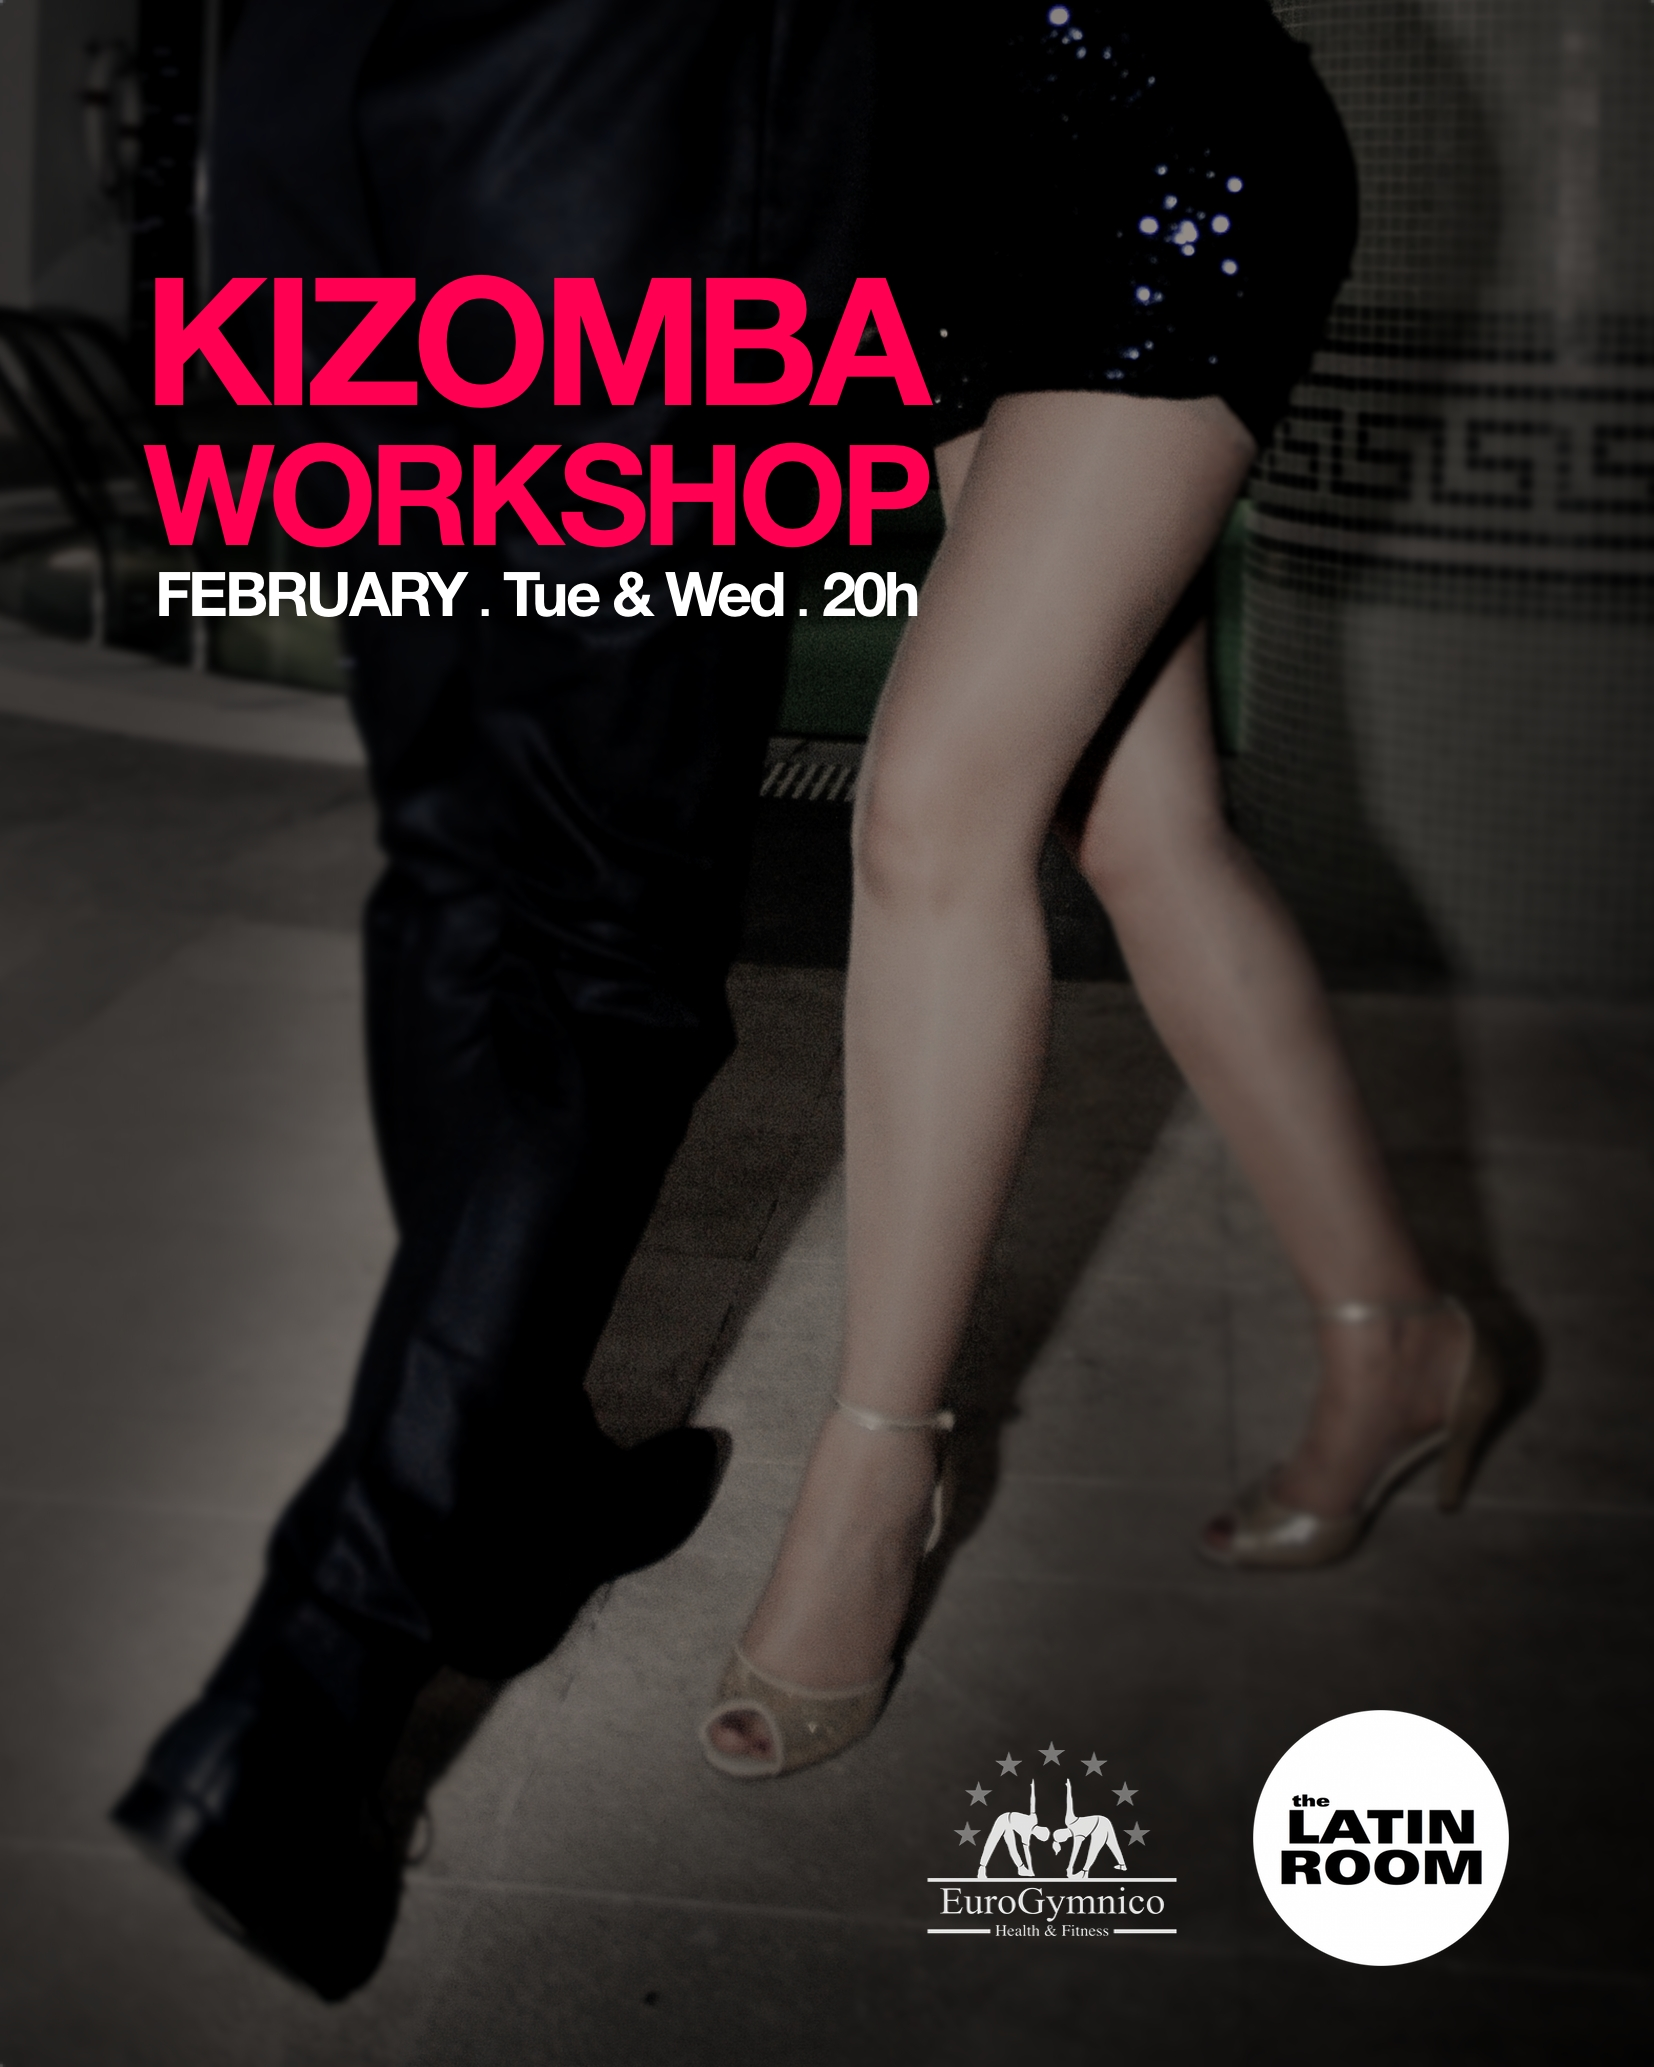 KIZOMBA Workshop in Madeira by The Latin Room